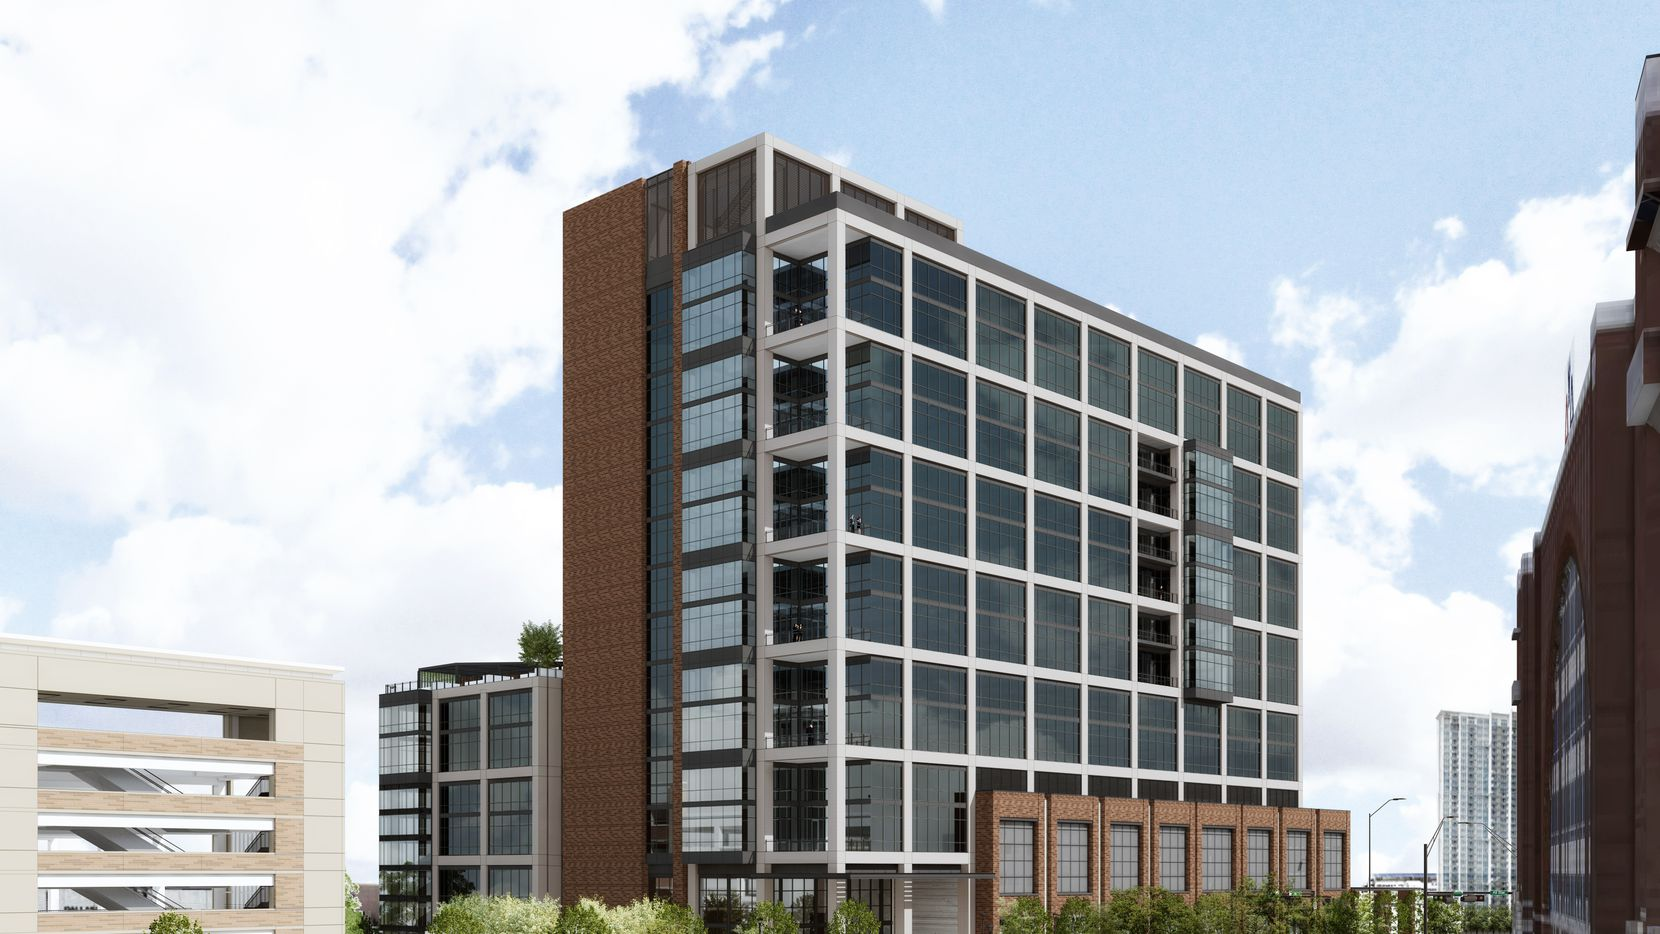 The office building is planned across from the American Airlines Center arena.